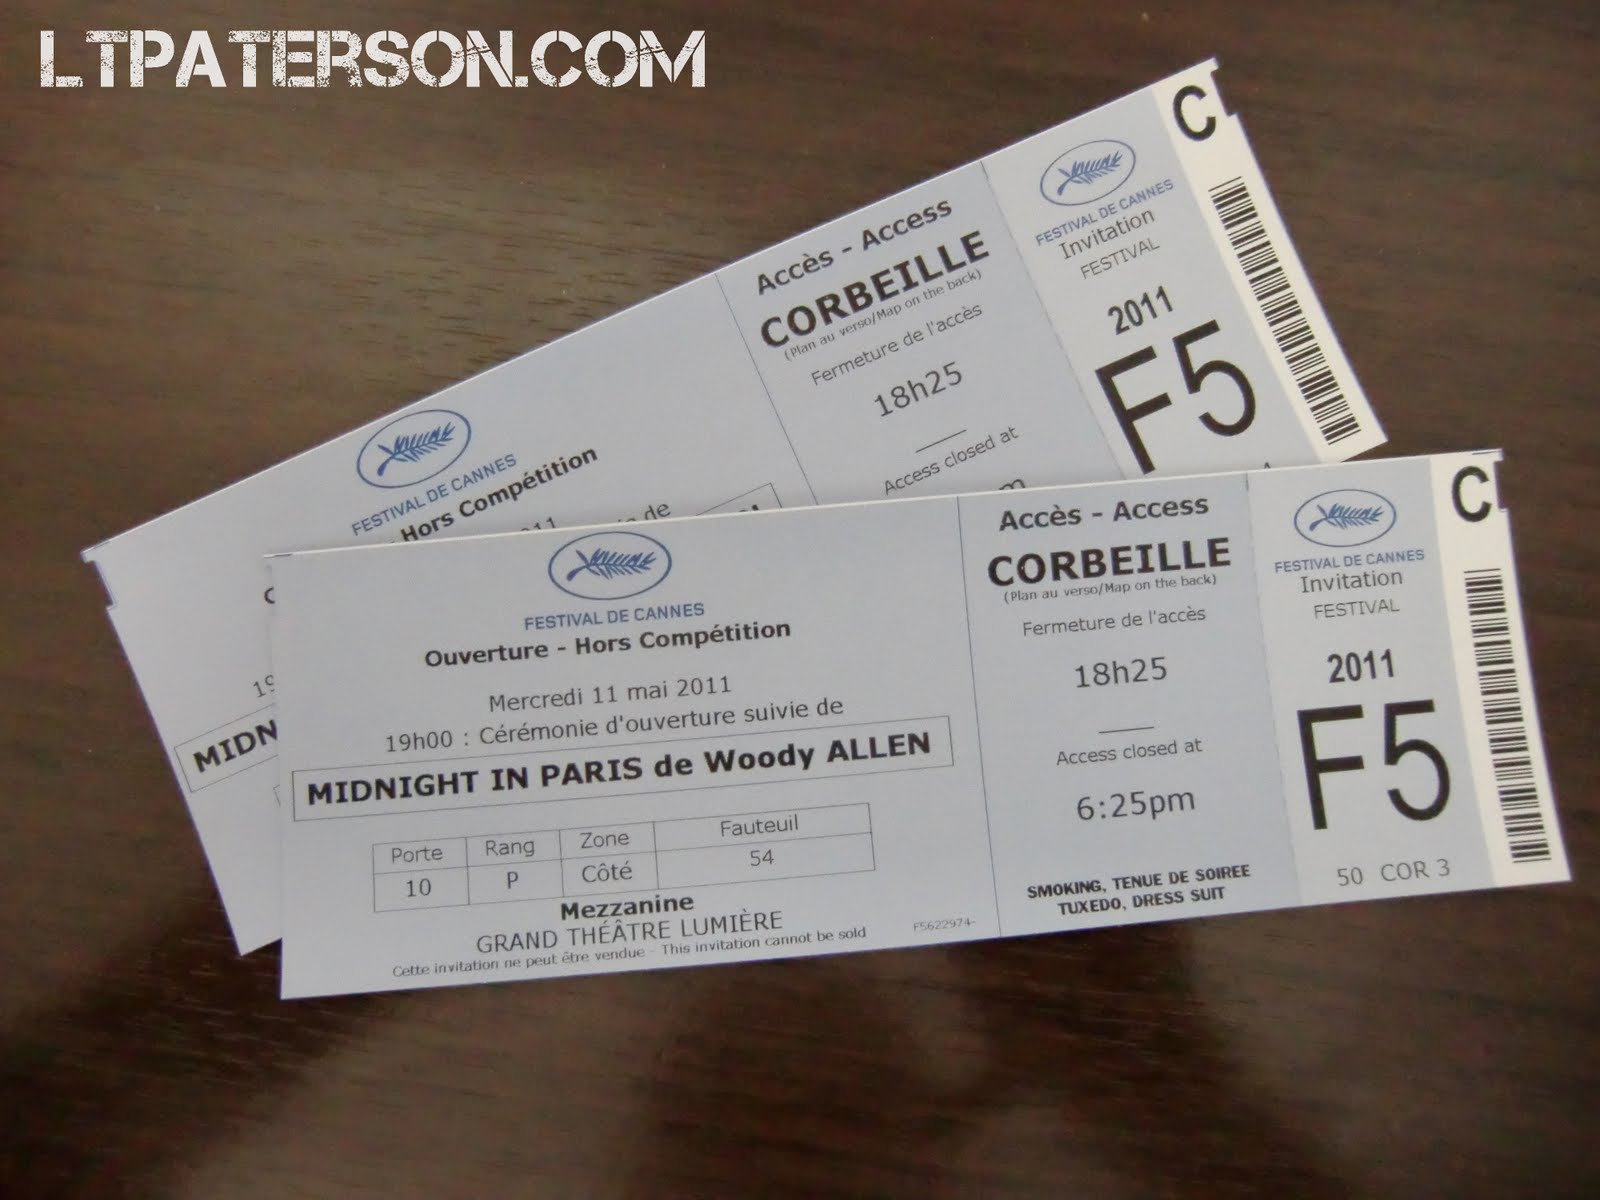 festival de cannes tickets